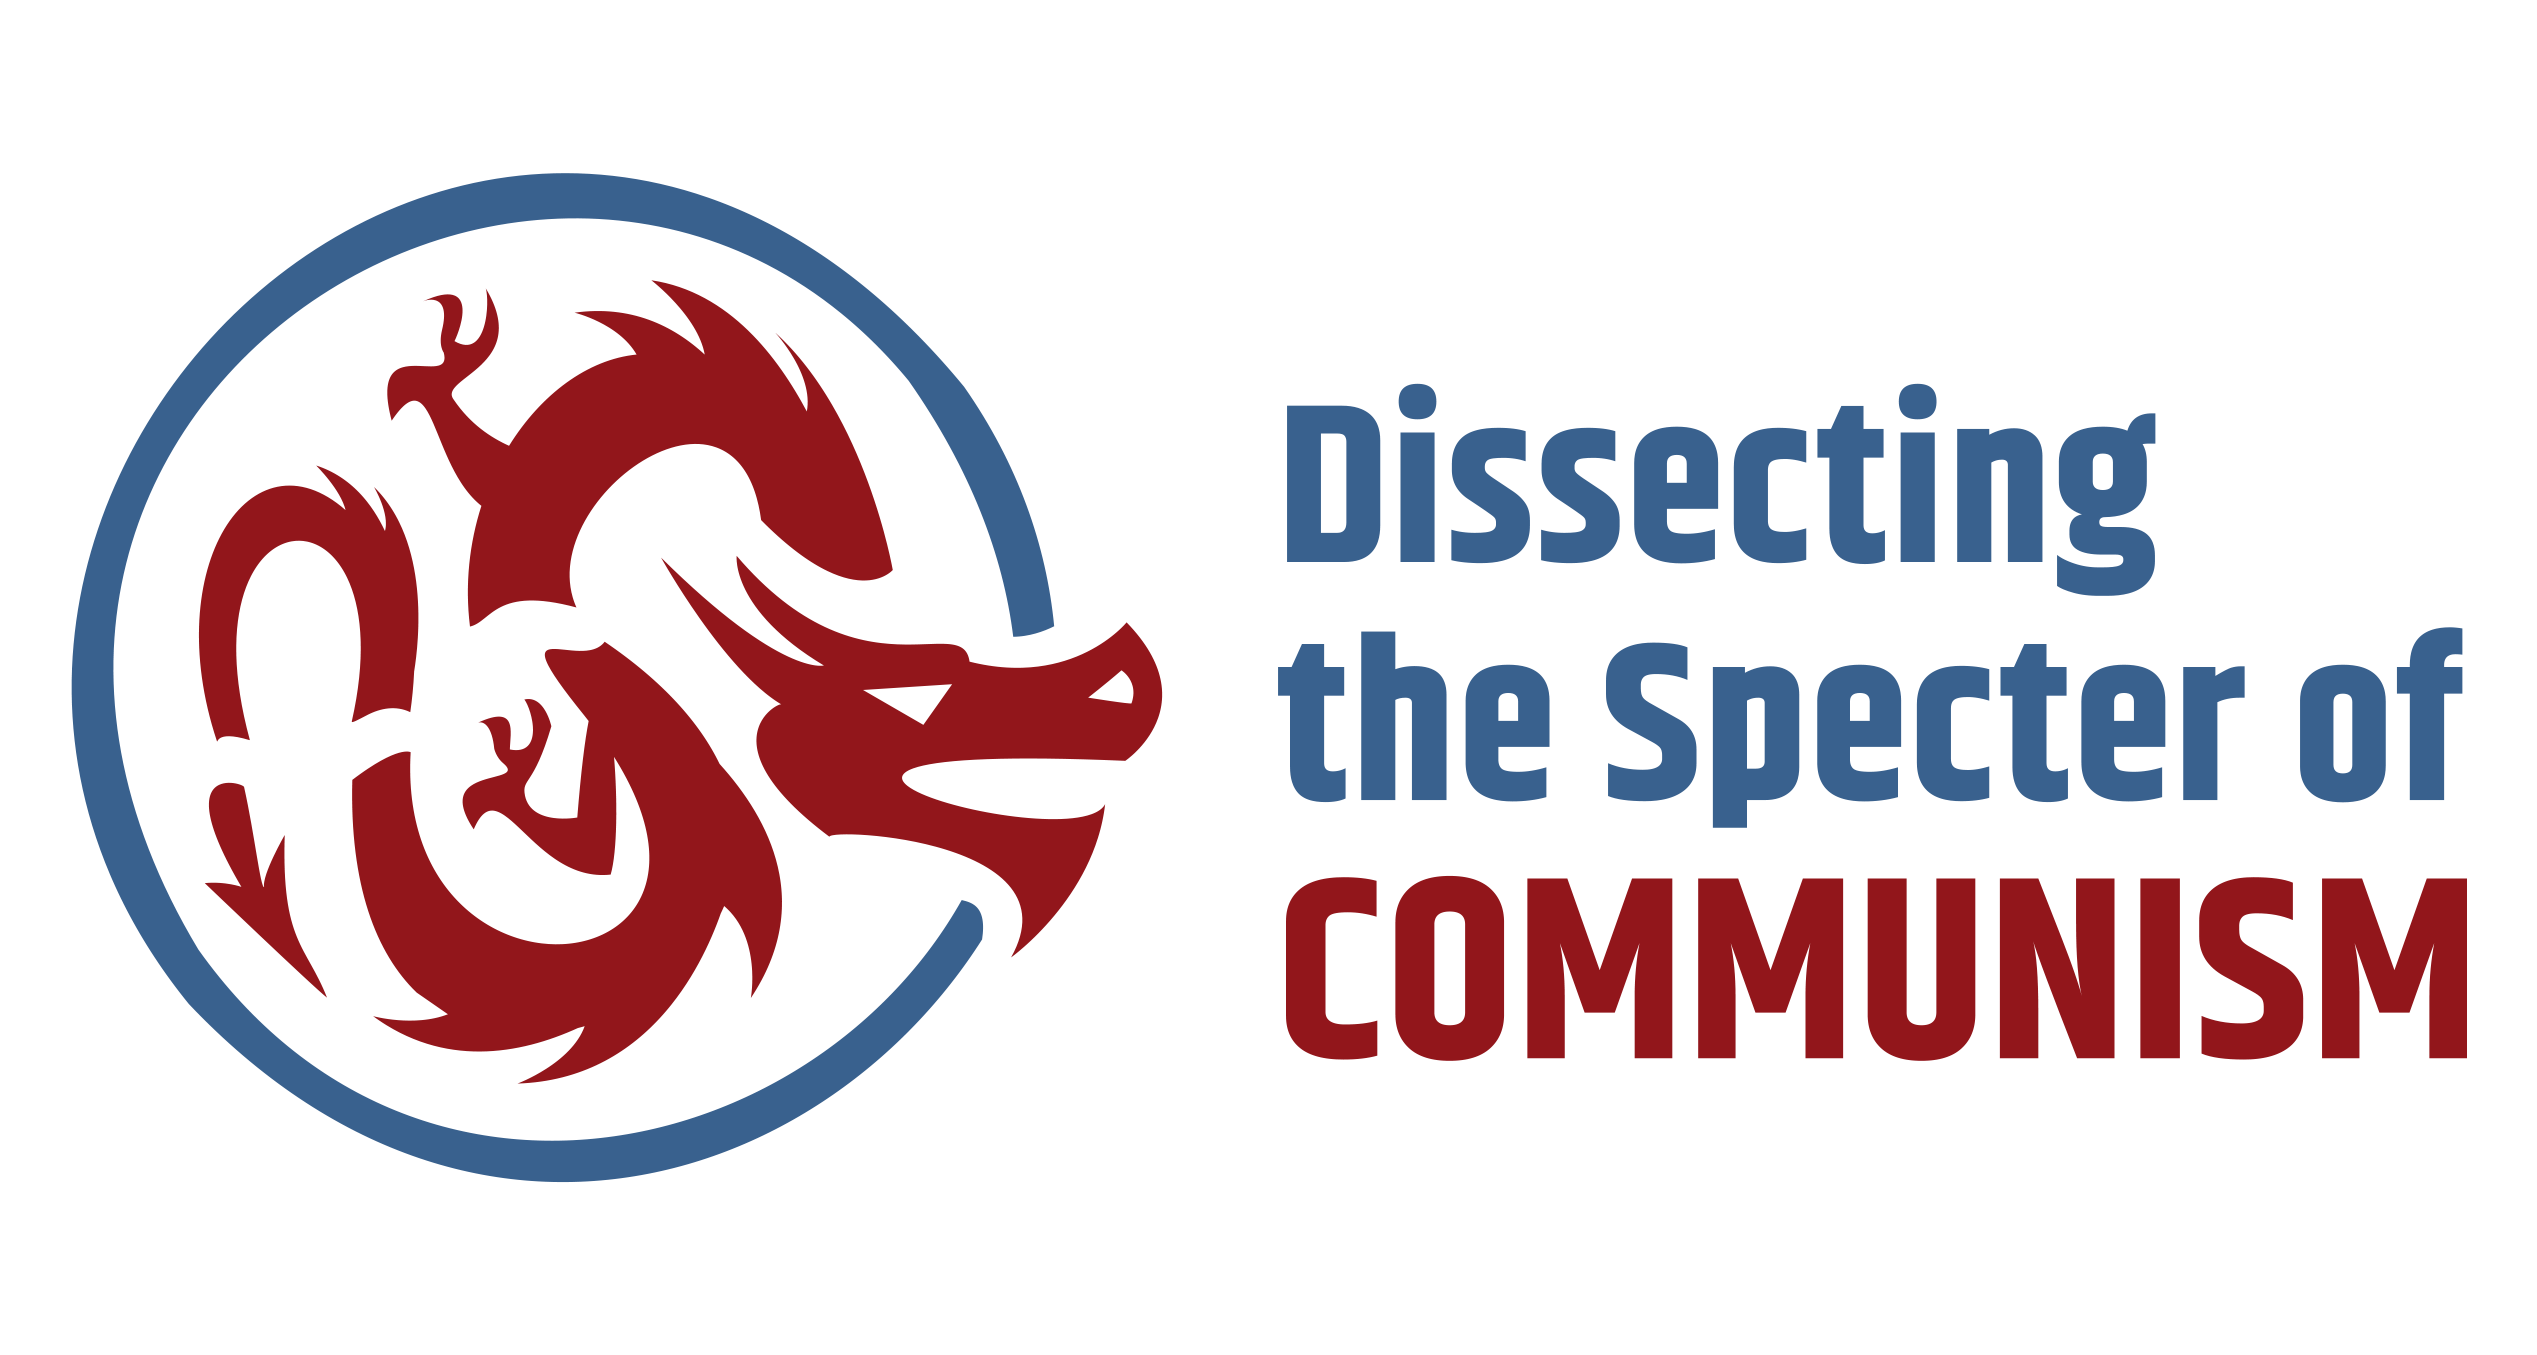 Dissecting The Specter of Communism